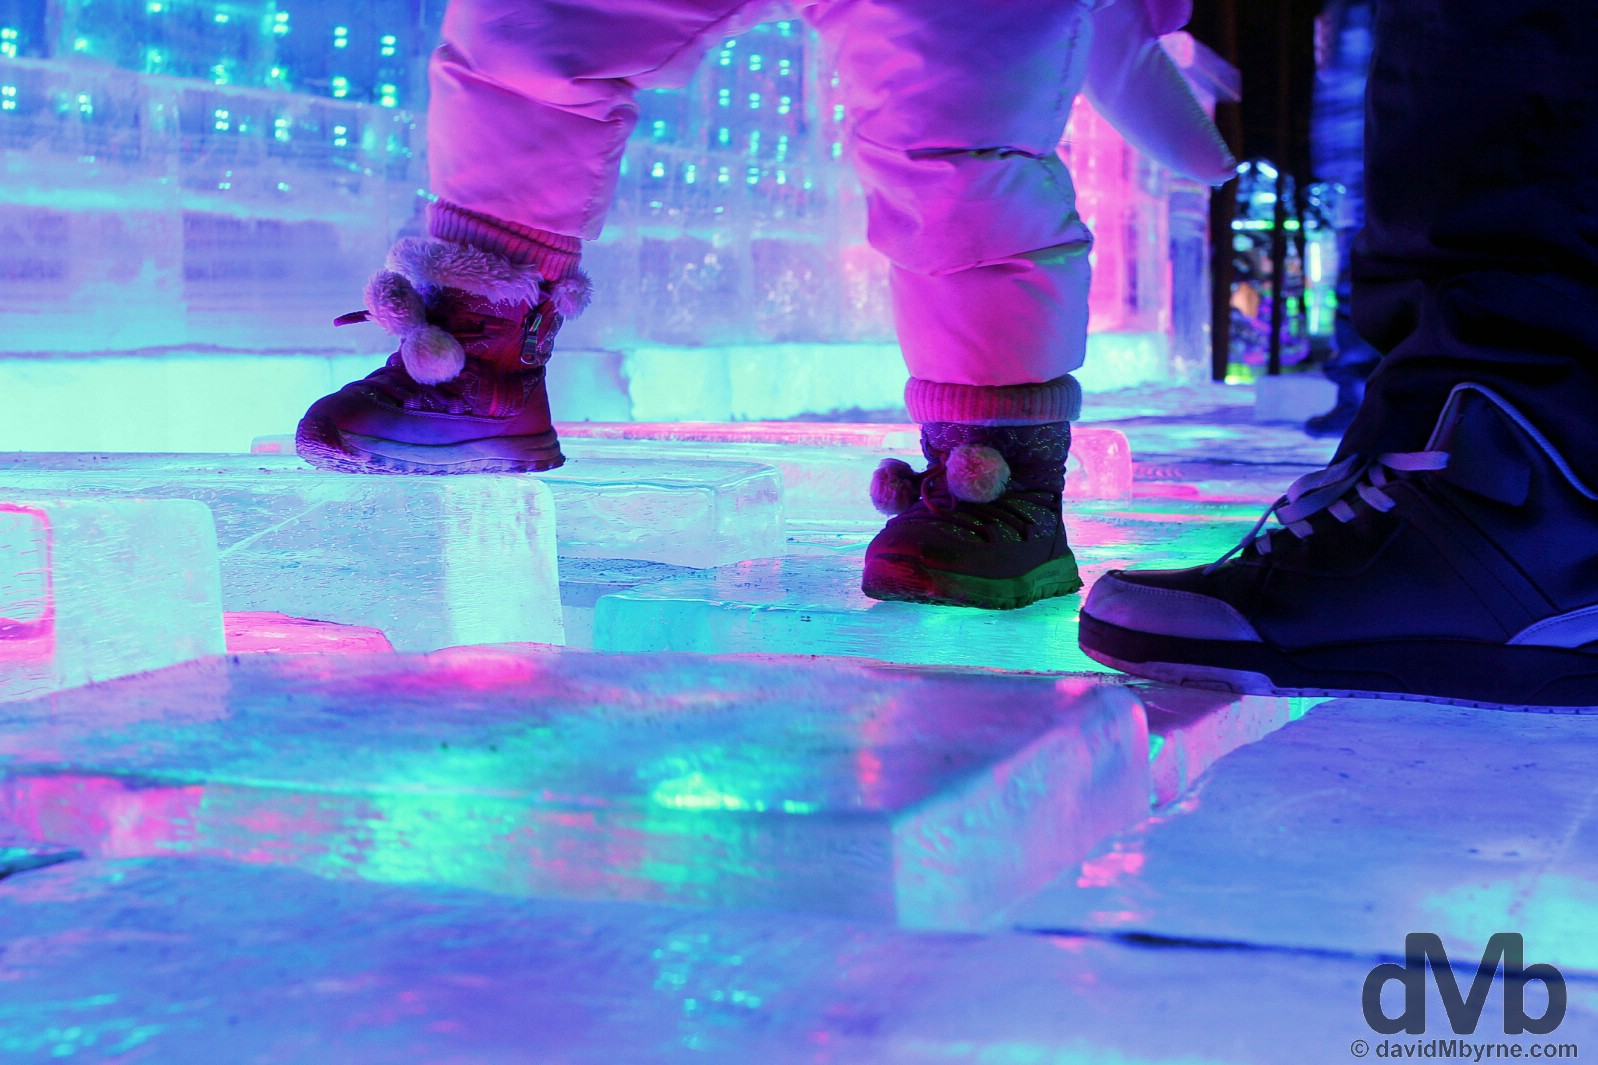 Little & not so little feet on the ice piano in Zhaolin Park as part of the annual International Ice and Snow Sculpture Festival in Harbin, China. February 6, 2015.